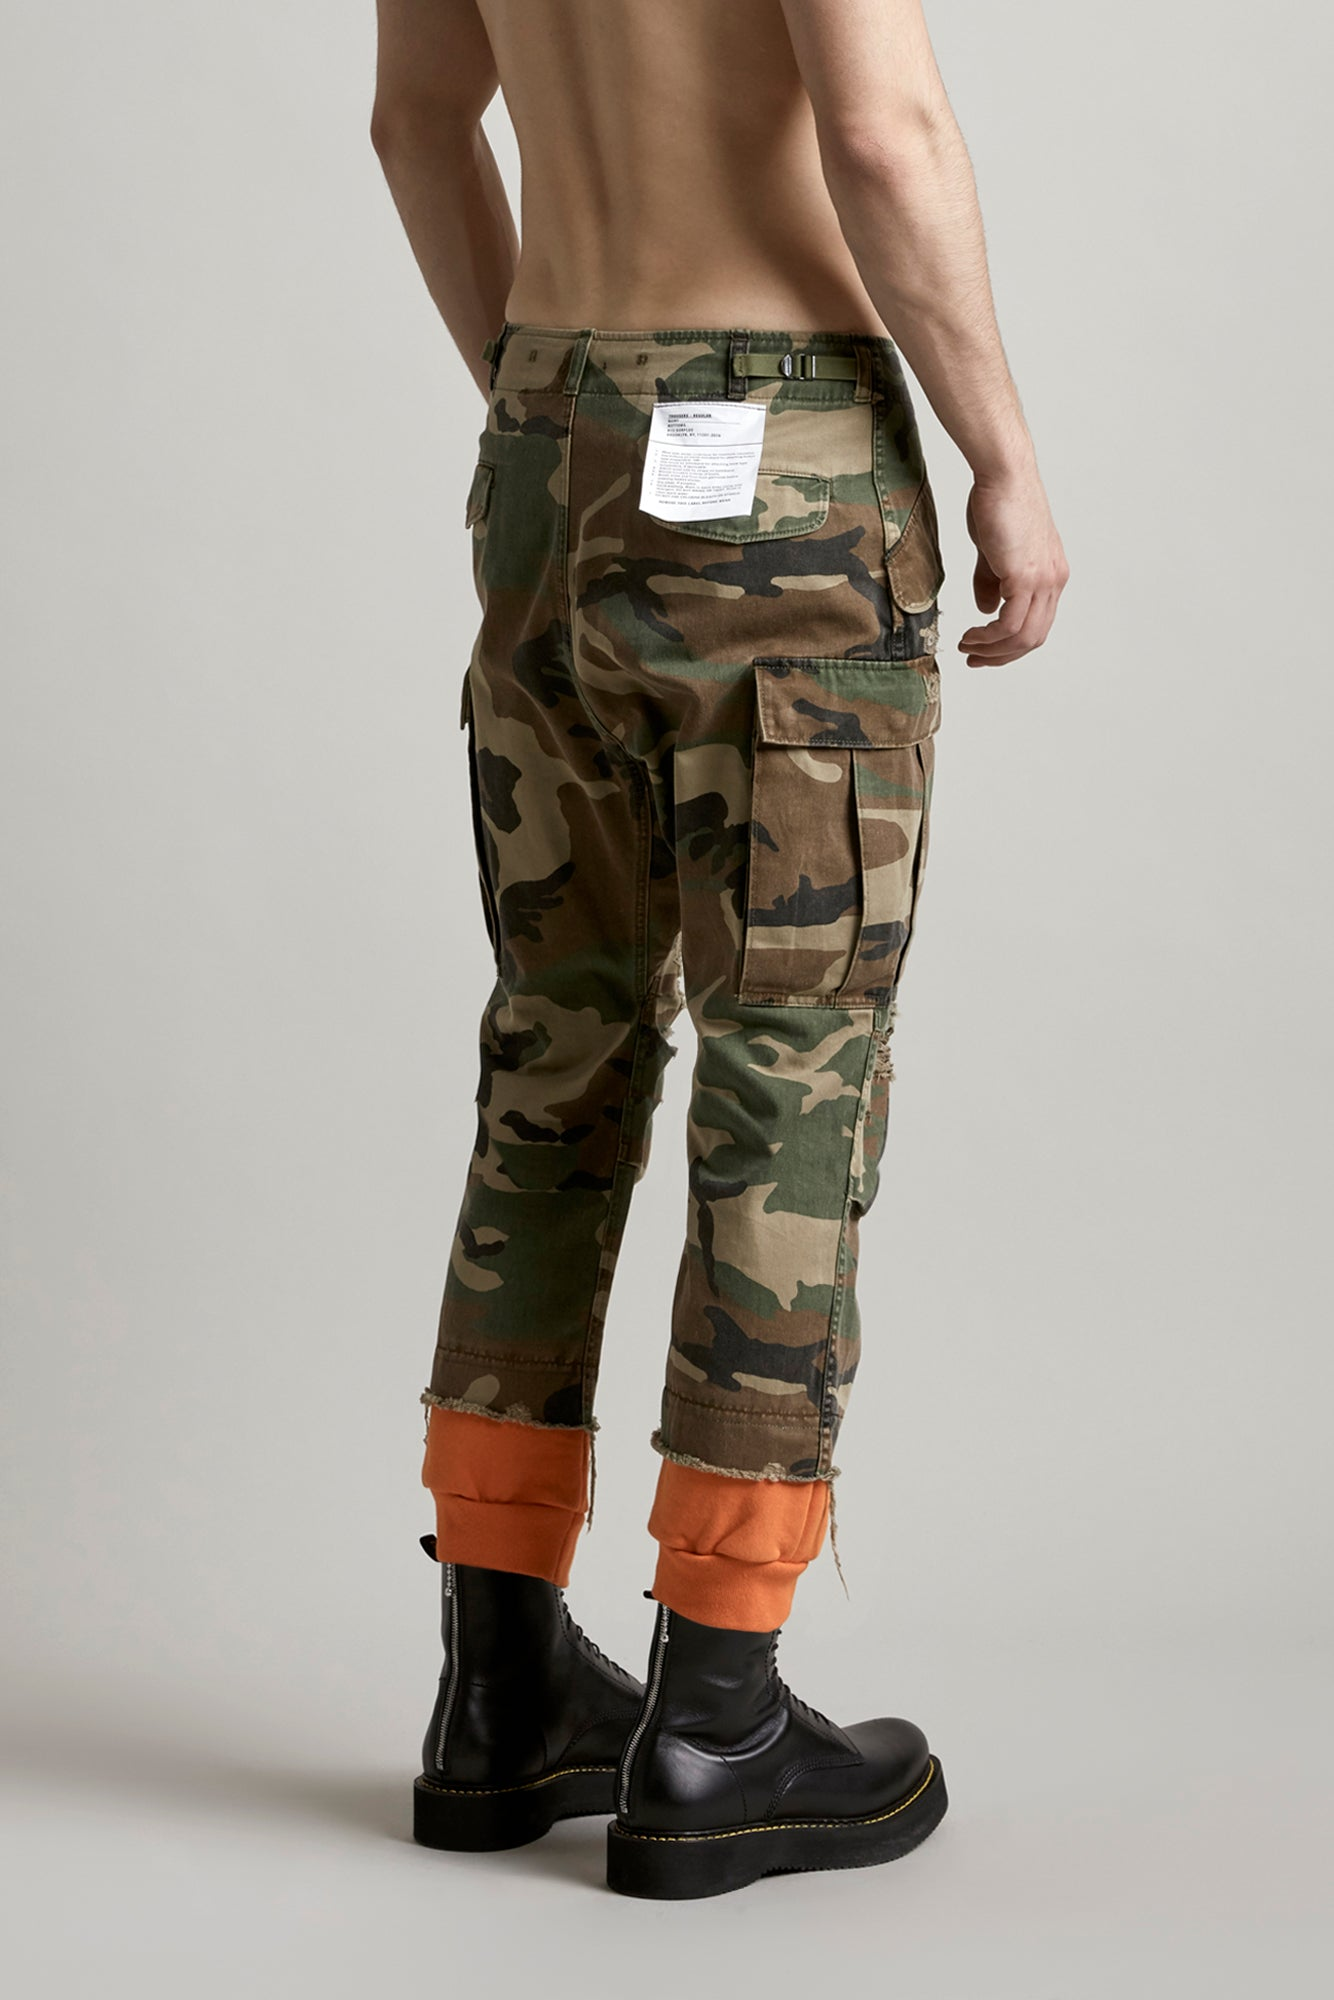 R13 classic cargo pant with orange sweatpant cuff with slight distressing at knee in camo